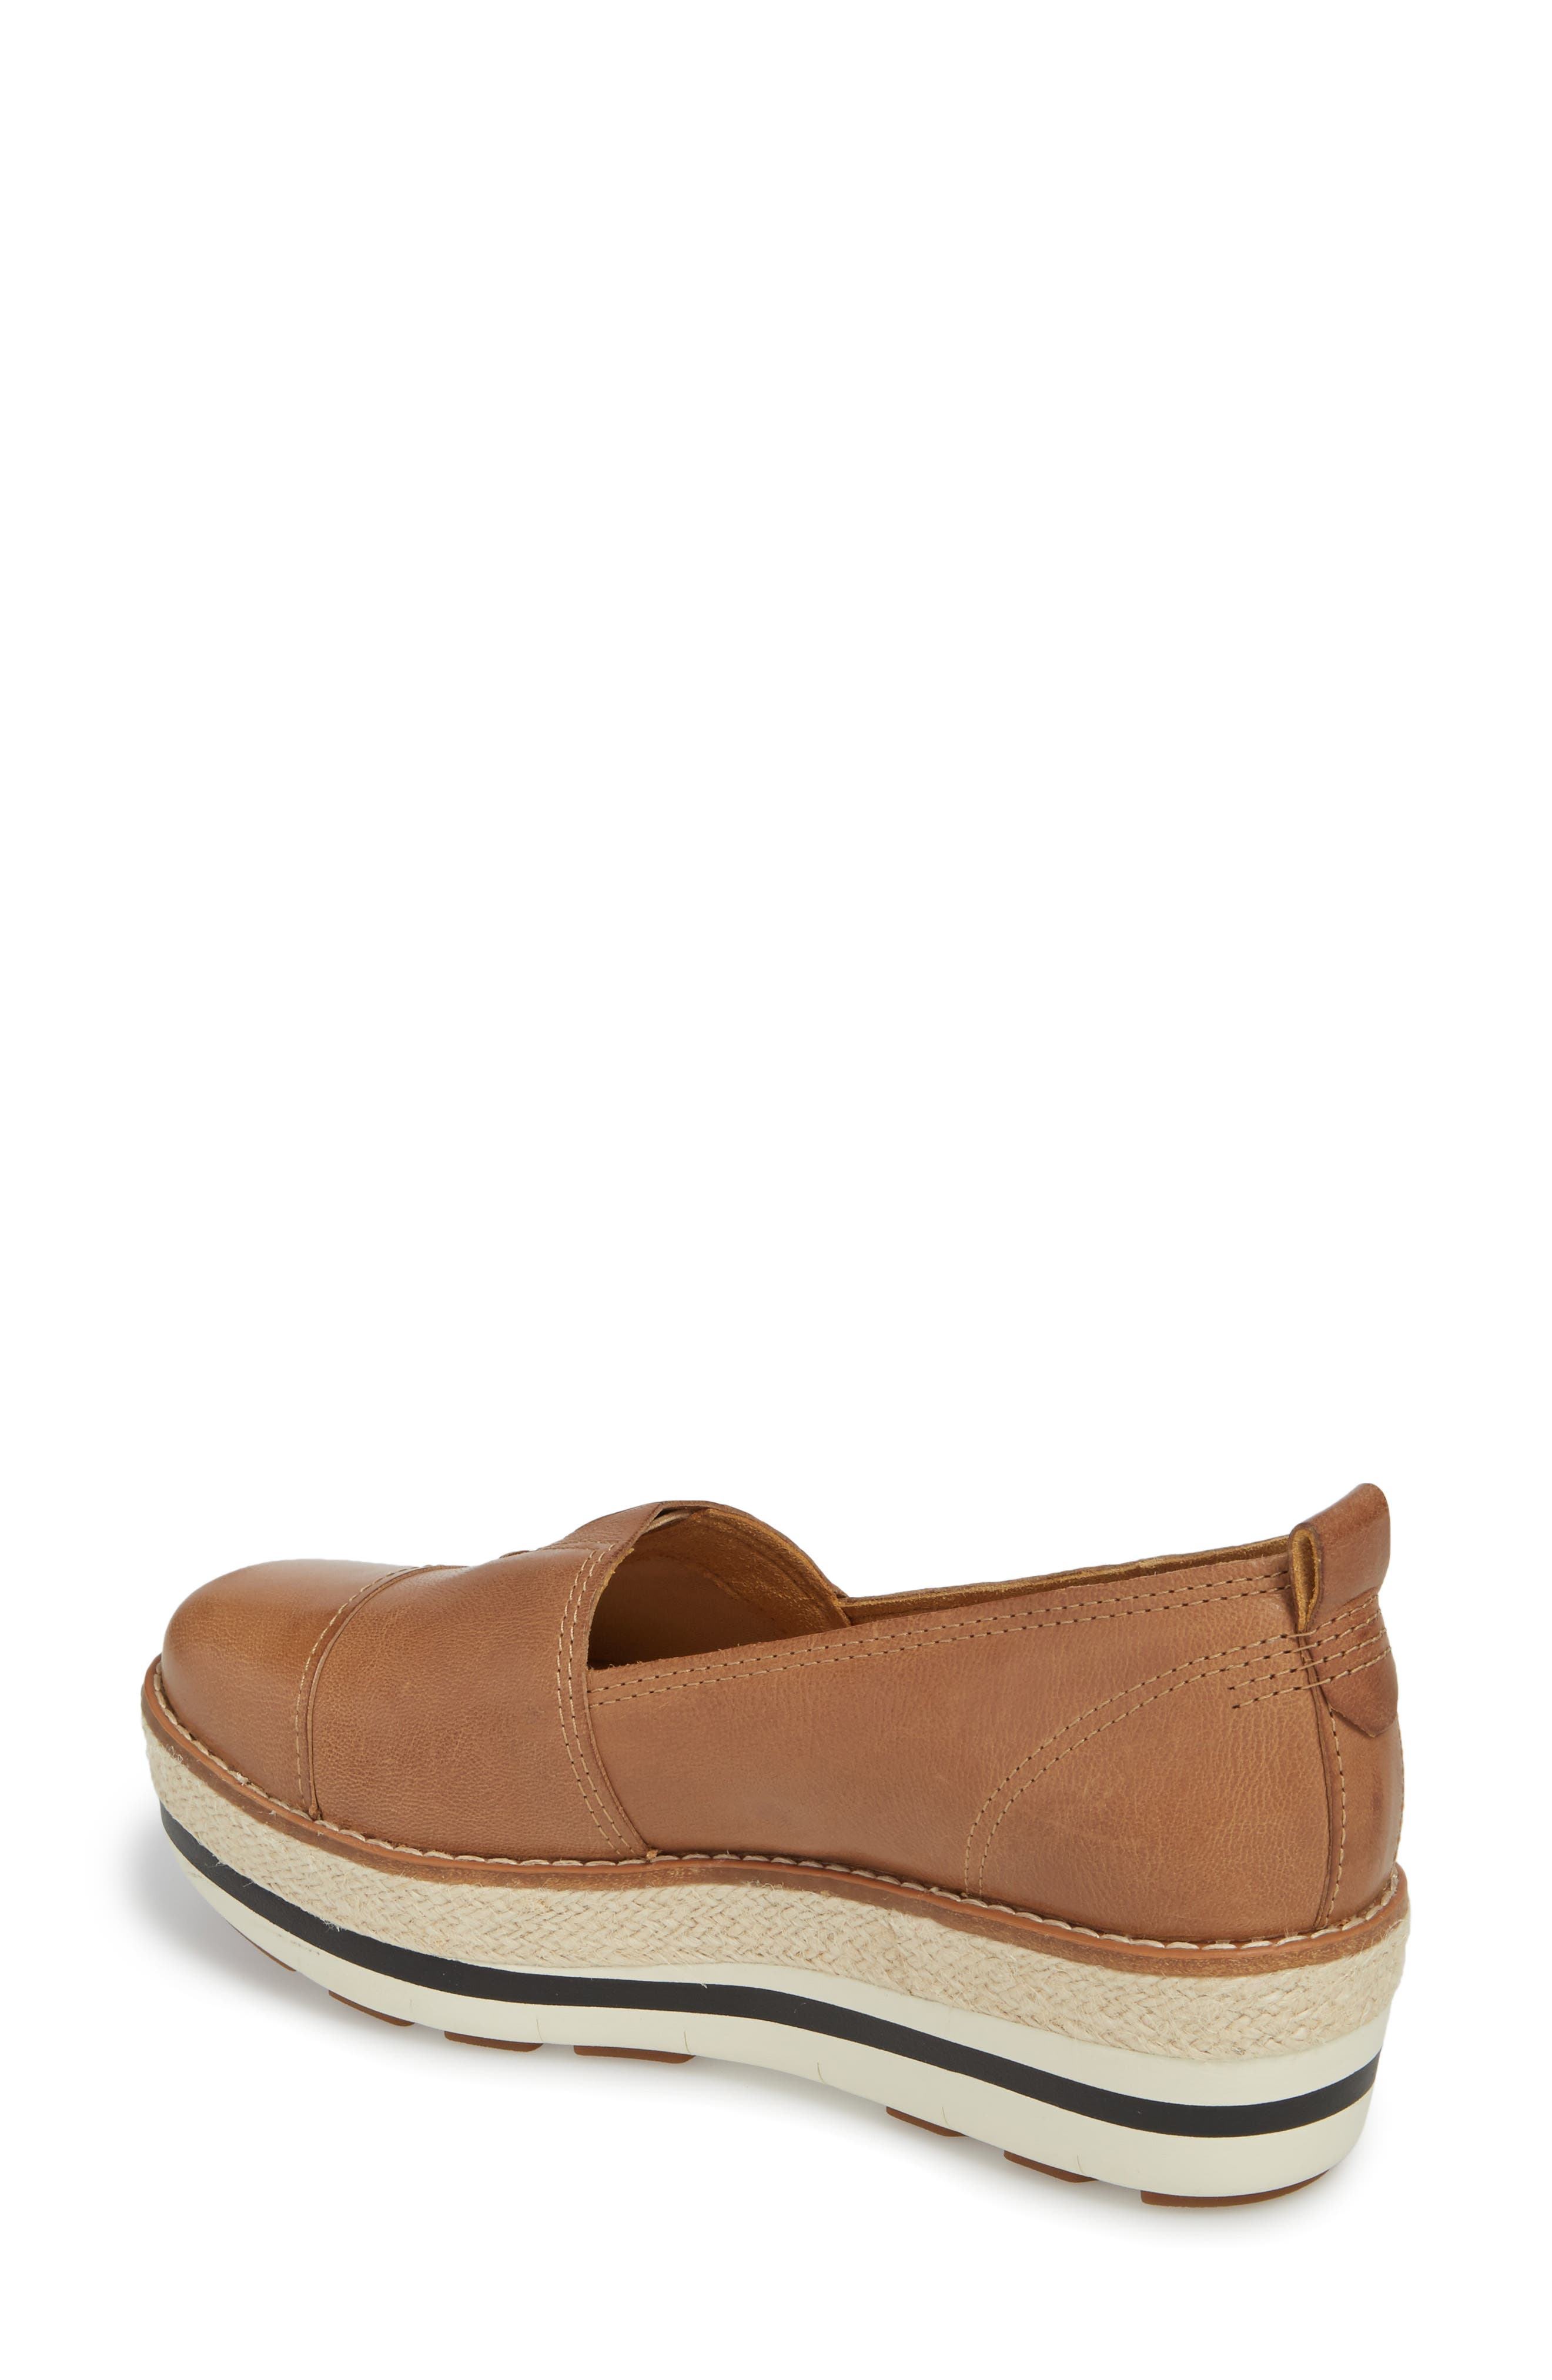 Emerson Platform Slip-On,                             Alternate thumbnail 2, color,                             Iced Coffee Leather